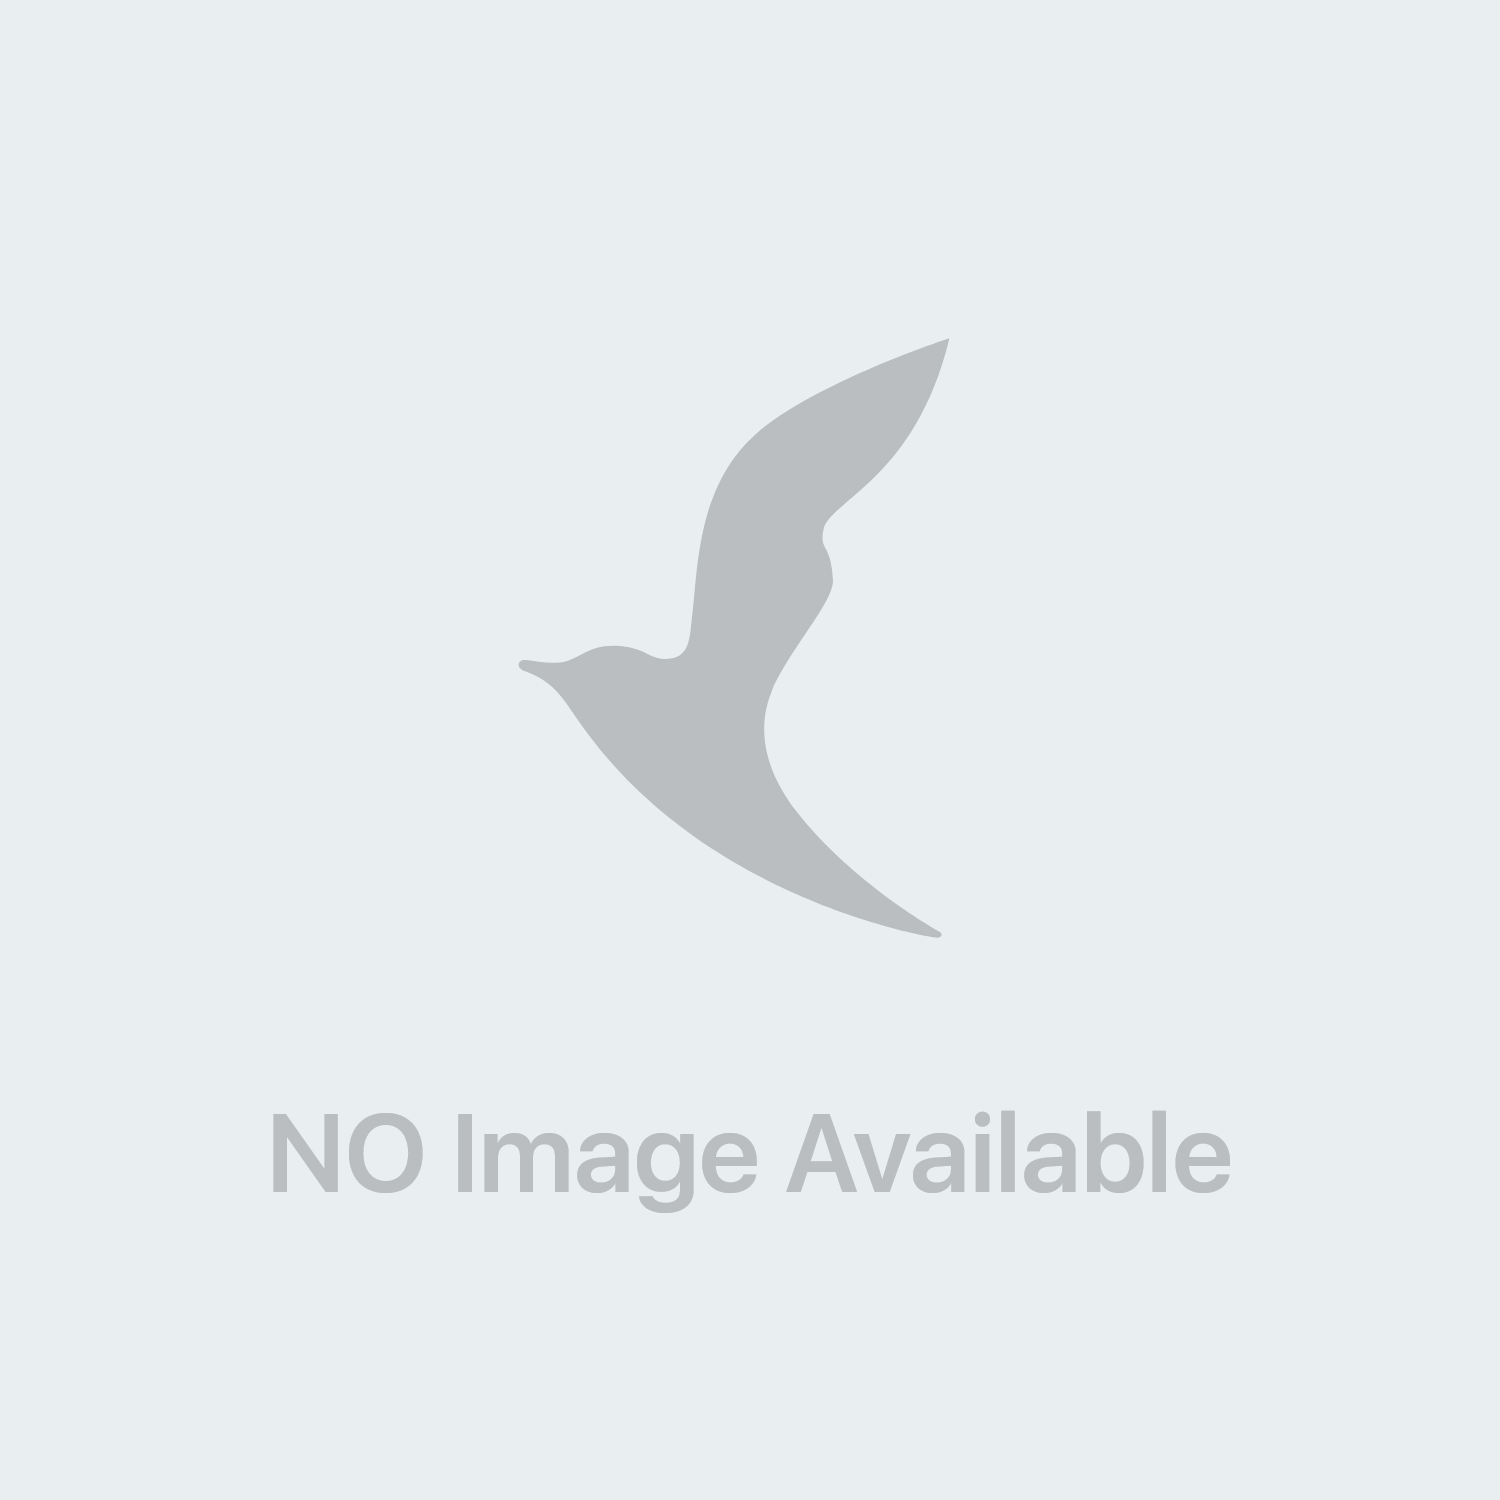 Dermana Dermanamico Mousse Detergente 200 Ml